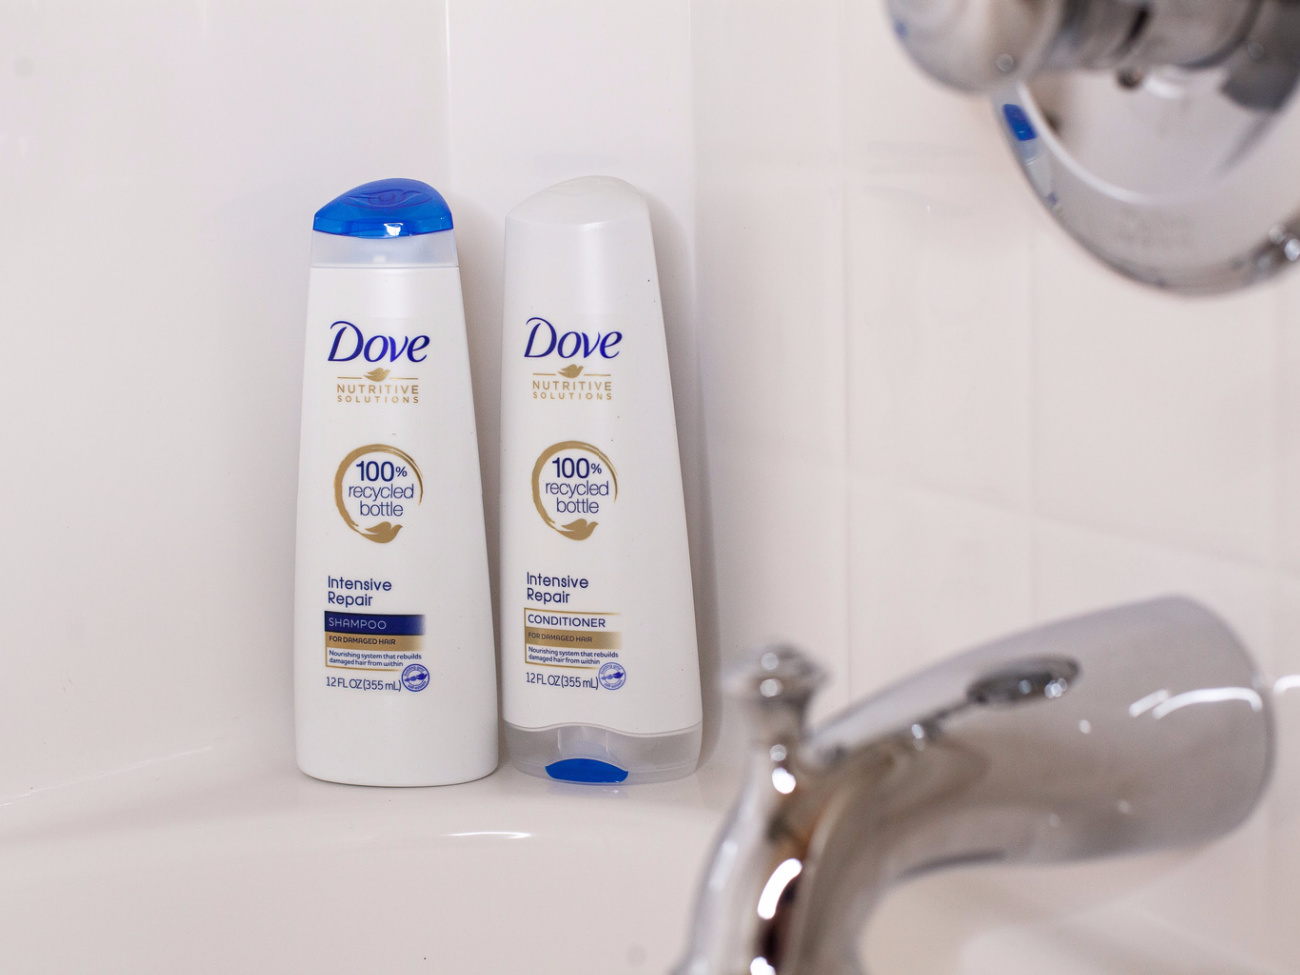 Dove Hair Care Products As Low As 99¢ At Kroger